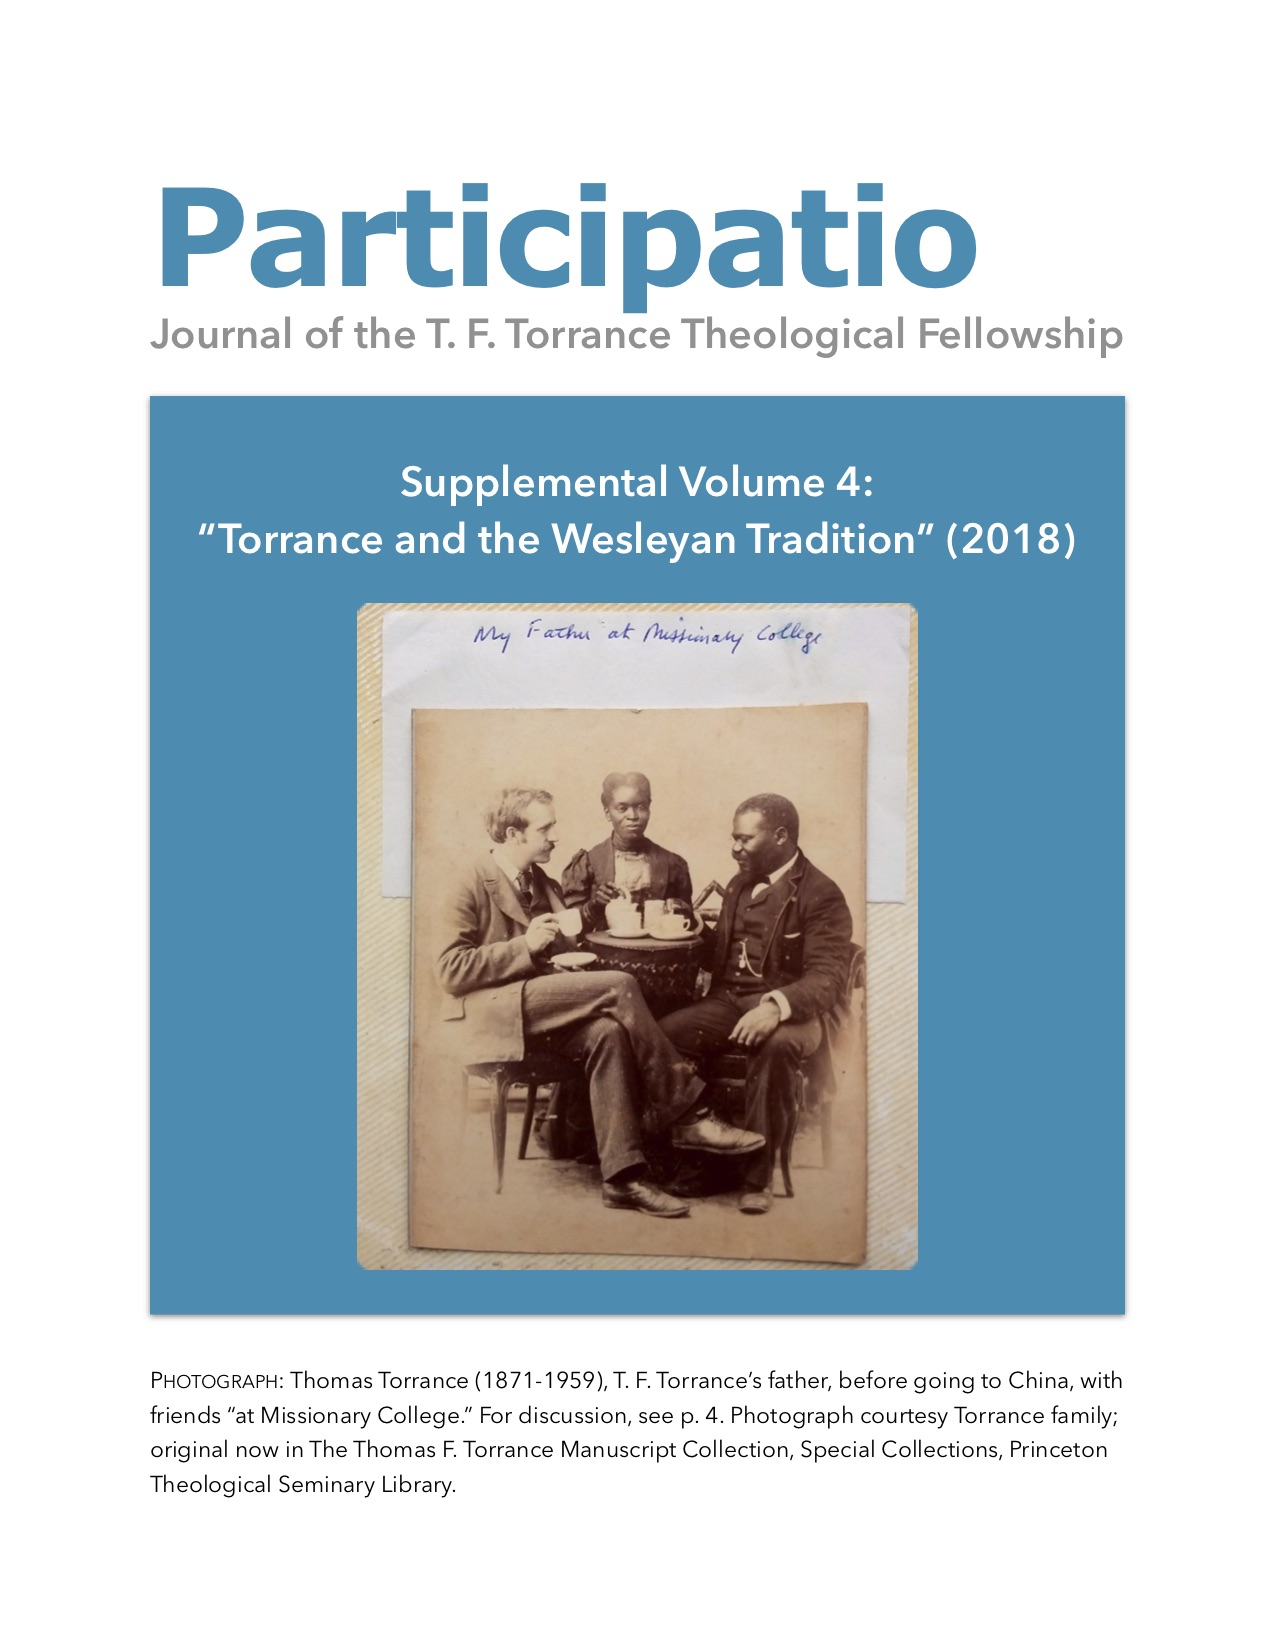 Participatio Supplemental Volume 4, cover page